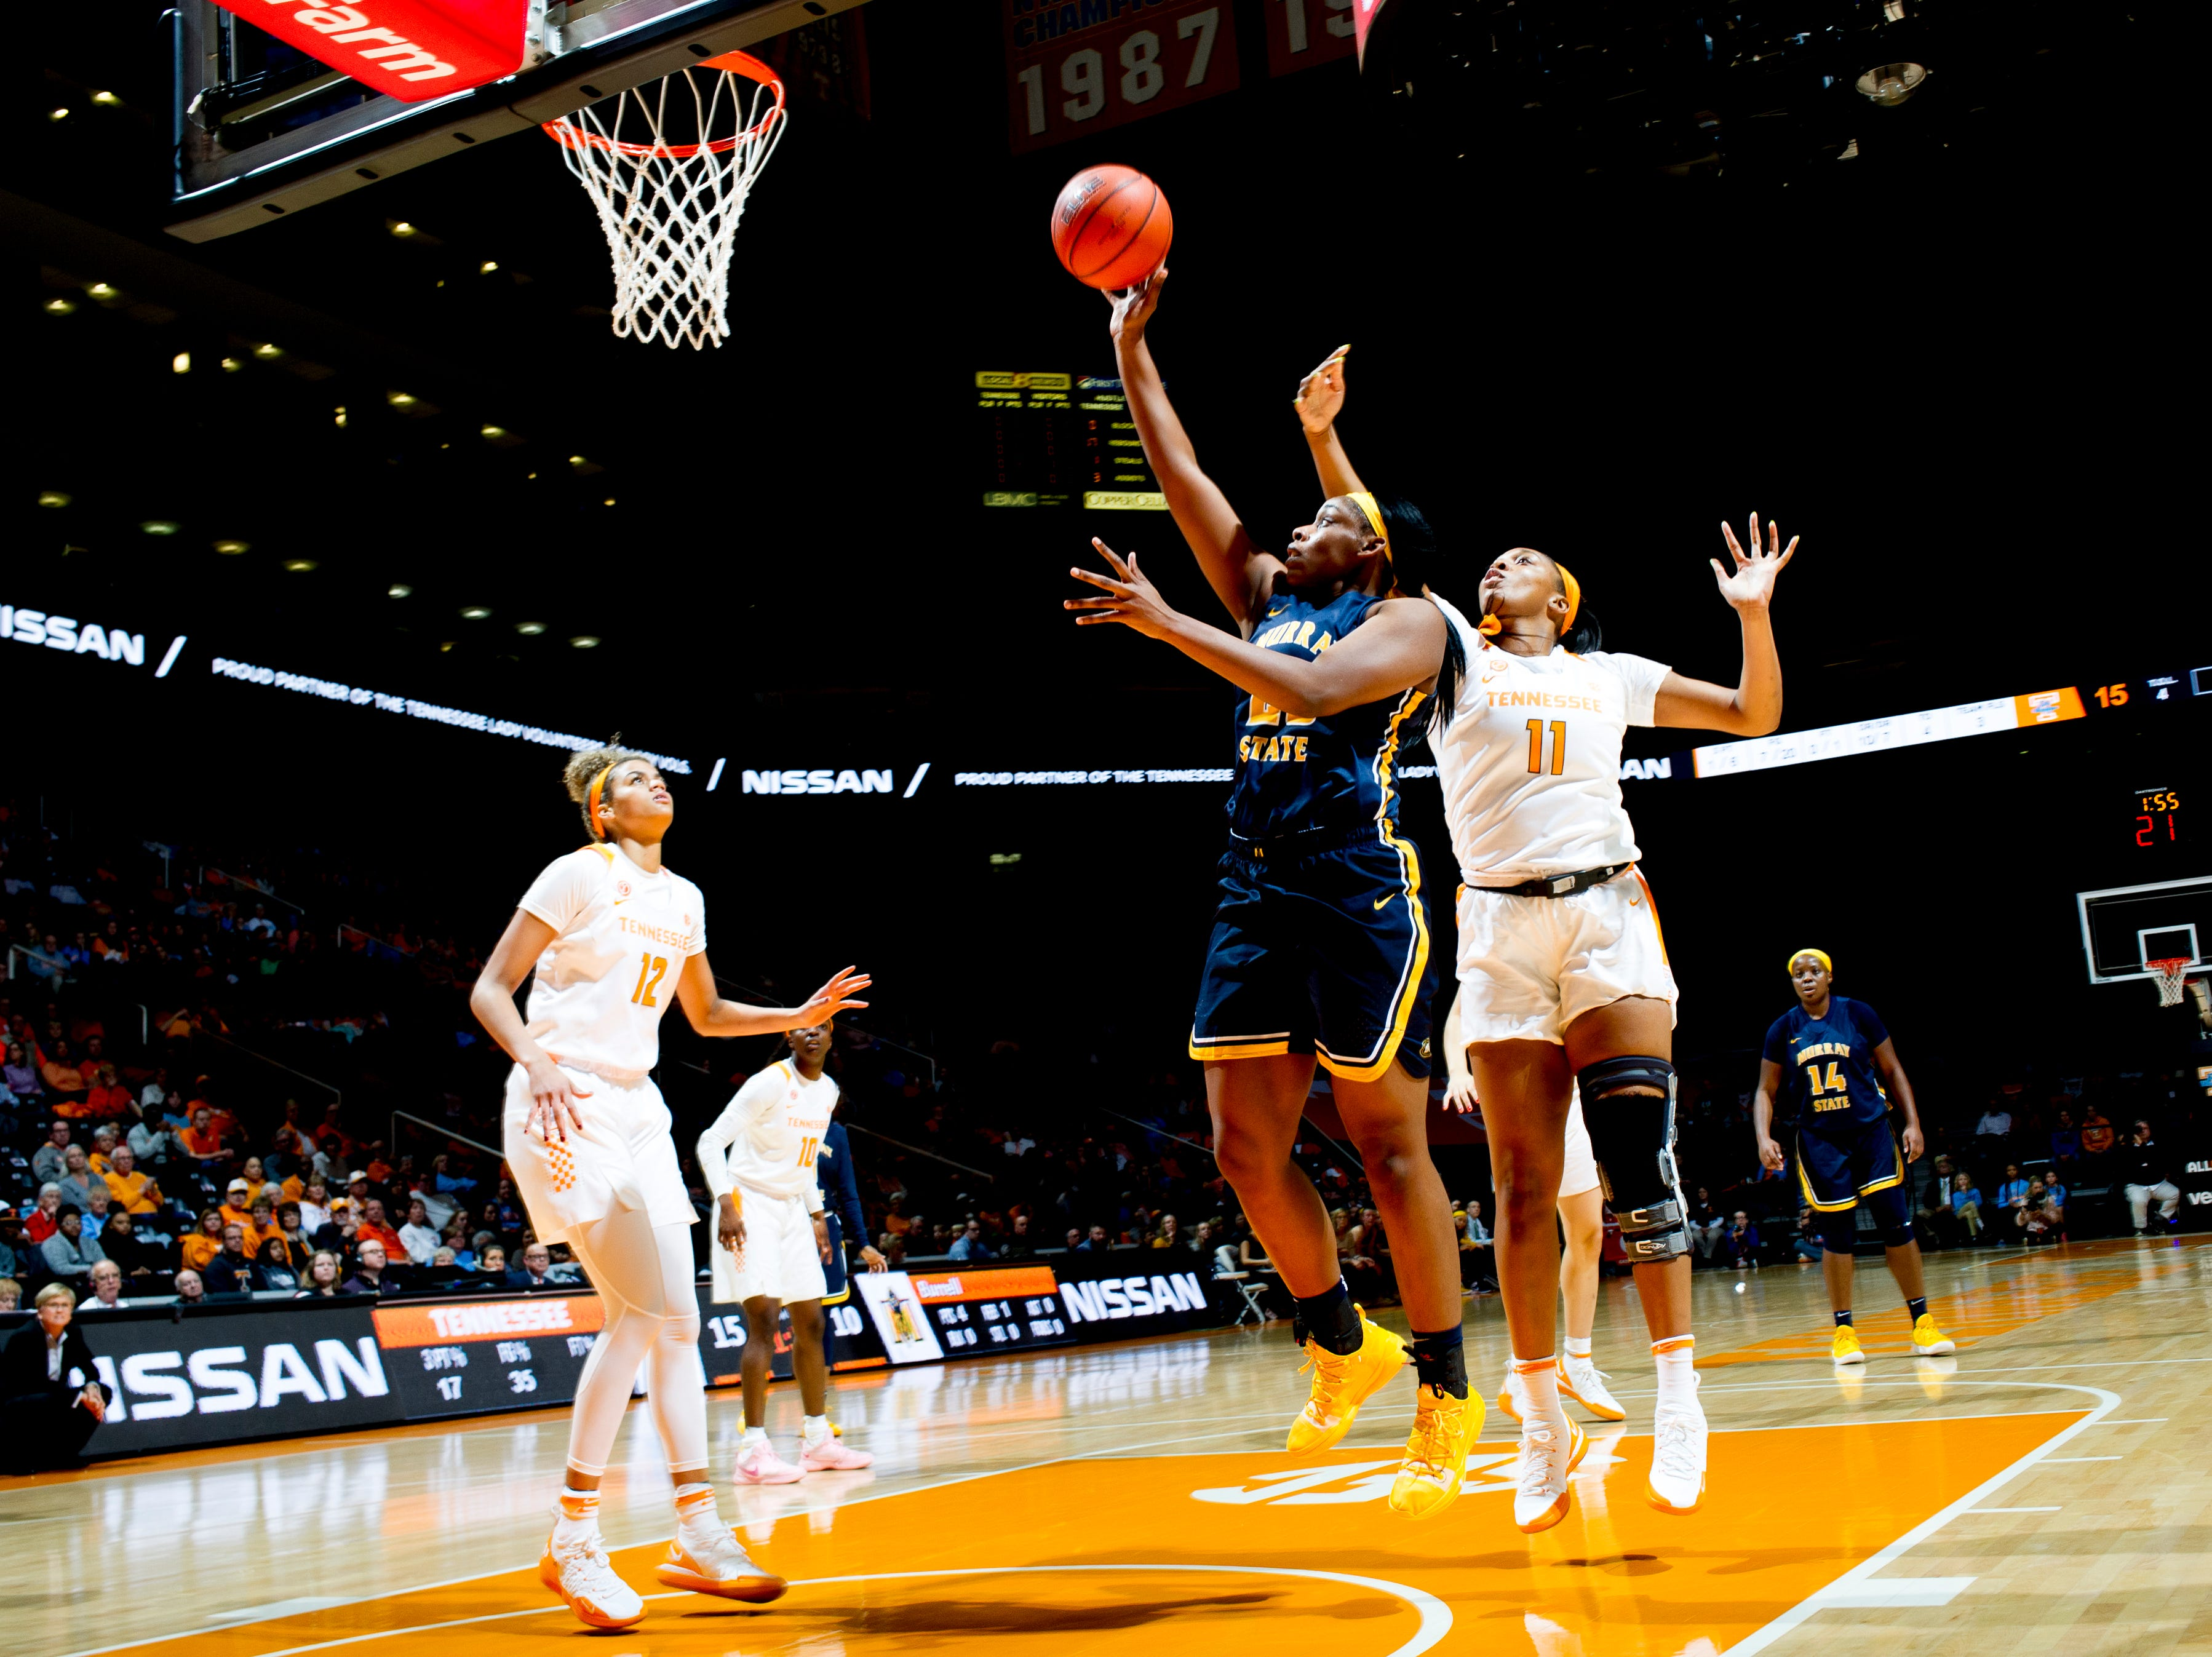 Murray State forward Cekeya Mack (20) shoots a layup as Tennessee center Kasiyahna Kushkituah (11) defends during a game between the Tennessee Lady Vols and Murray State at Thompson-Boling Arena in Knoxville, Tennessee on Friday, December 28, 2018.